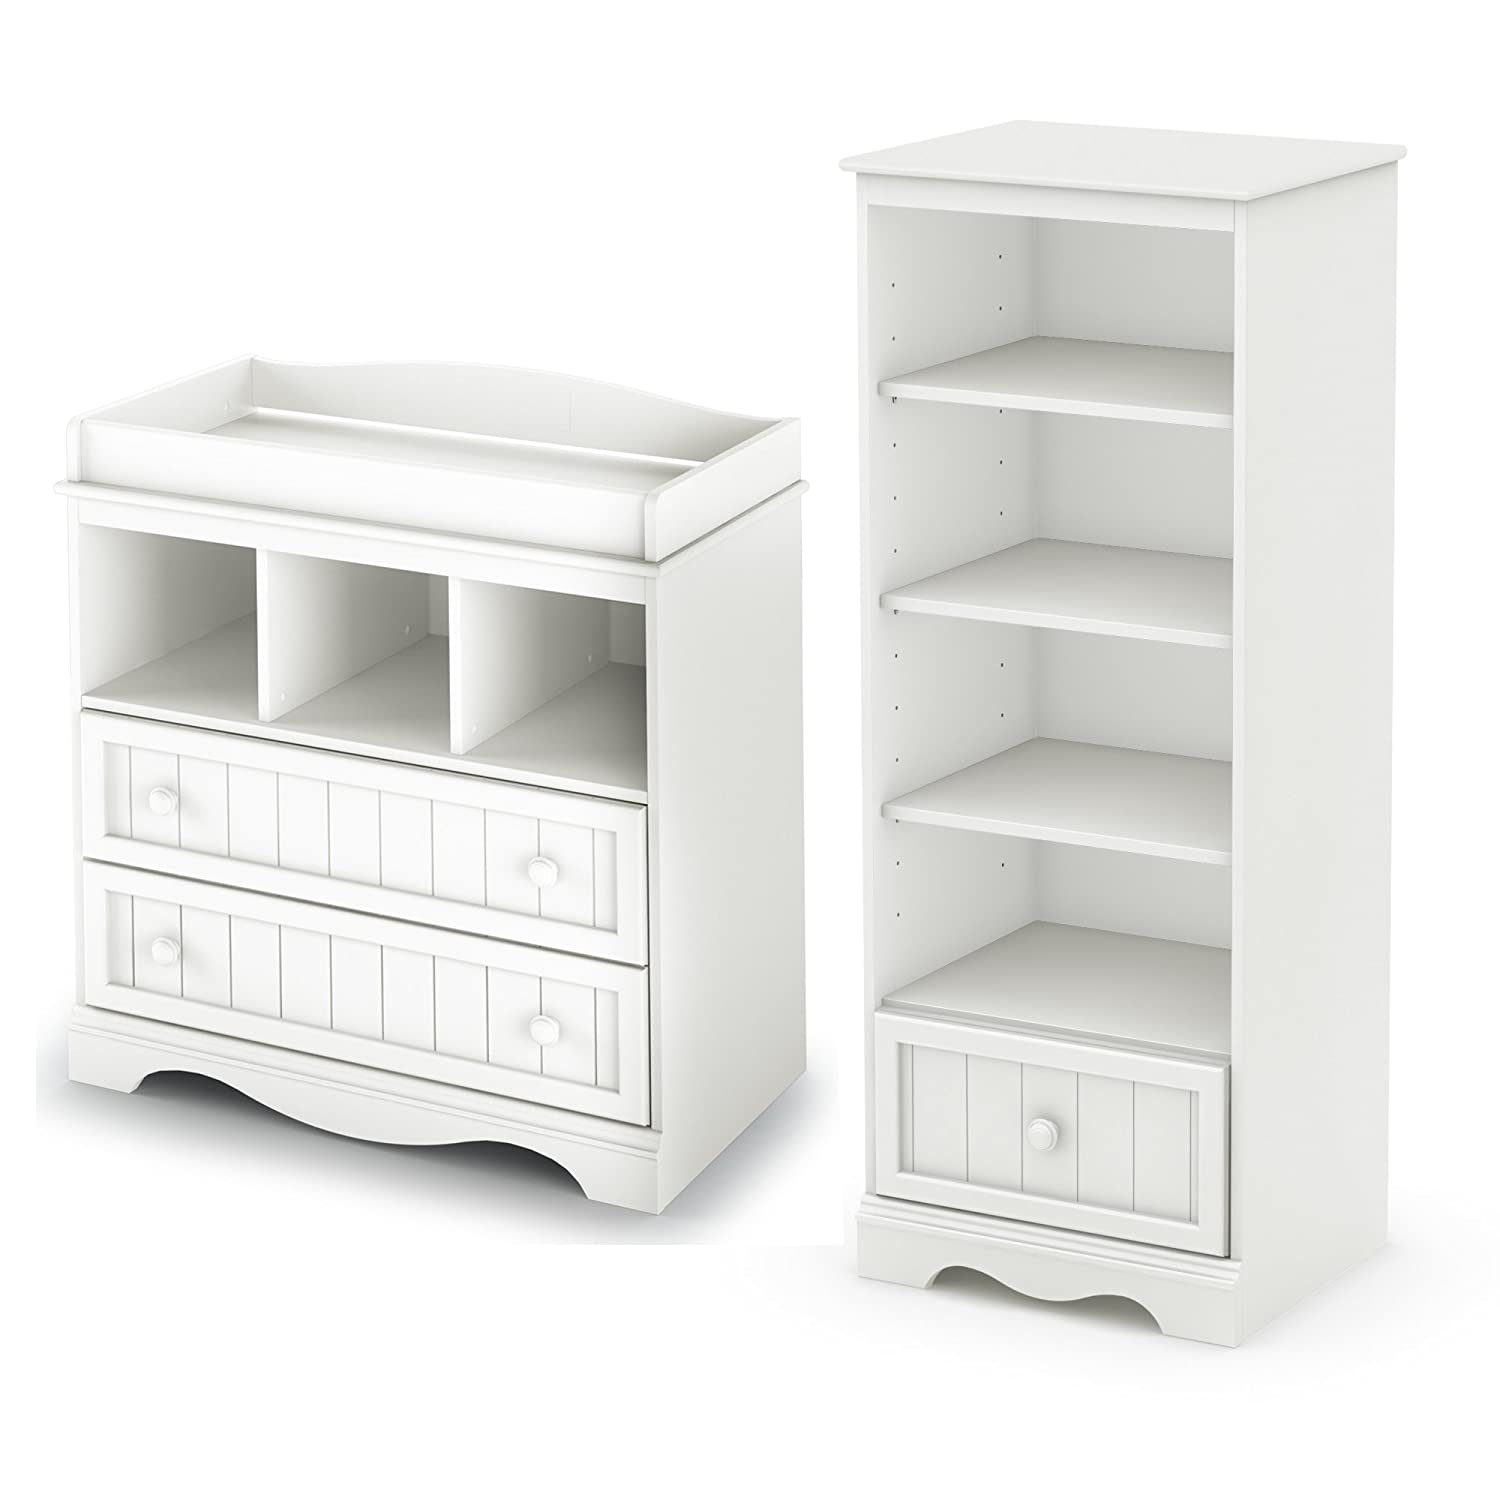 Amazon South Shore Savannah Changing Table and Shelving Unit